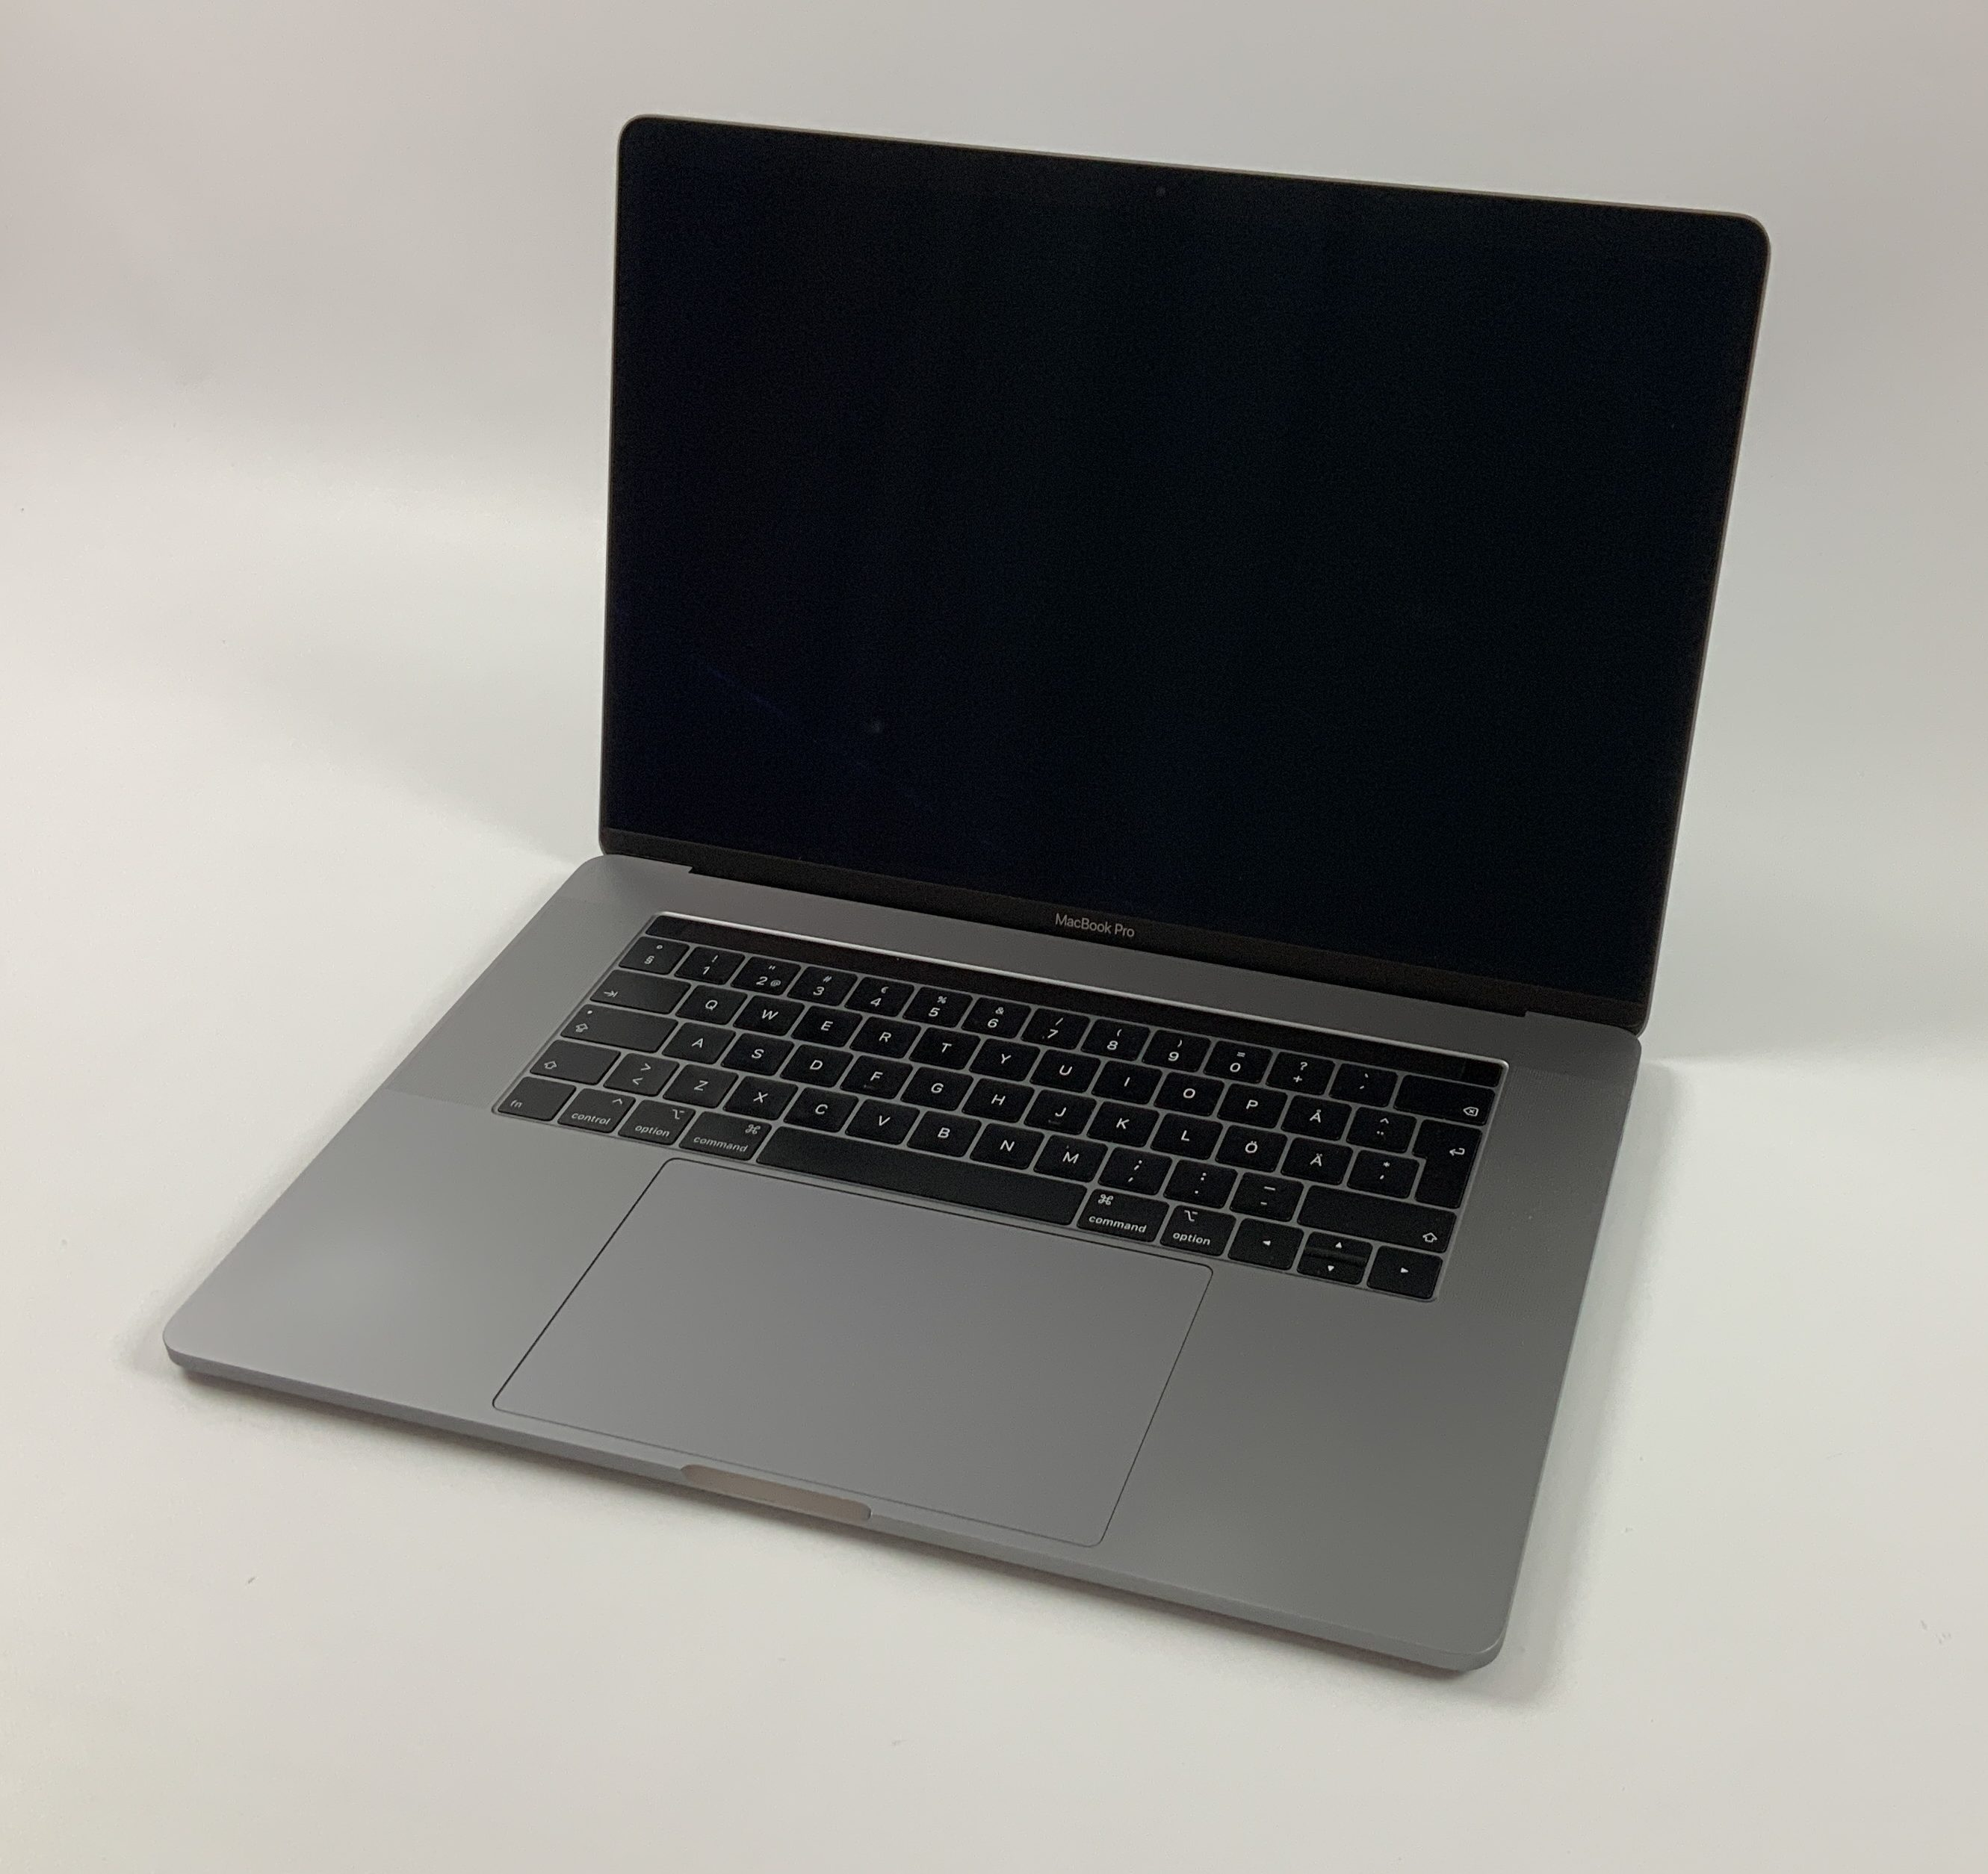 "MacBook Pro 15"" Touch Bar Mid 2018 (Intel 6-Core i7 2.2 GHz 16 GB RAM 256 GB SSD), Space Gray, Intel 6-Core i7 2.2 GHz, 16 GB RAM, 256 GB SSD, immagine 1"